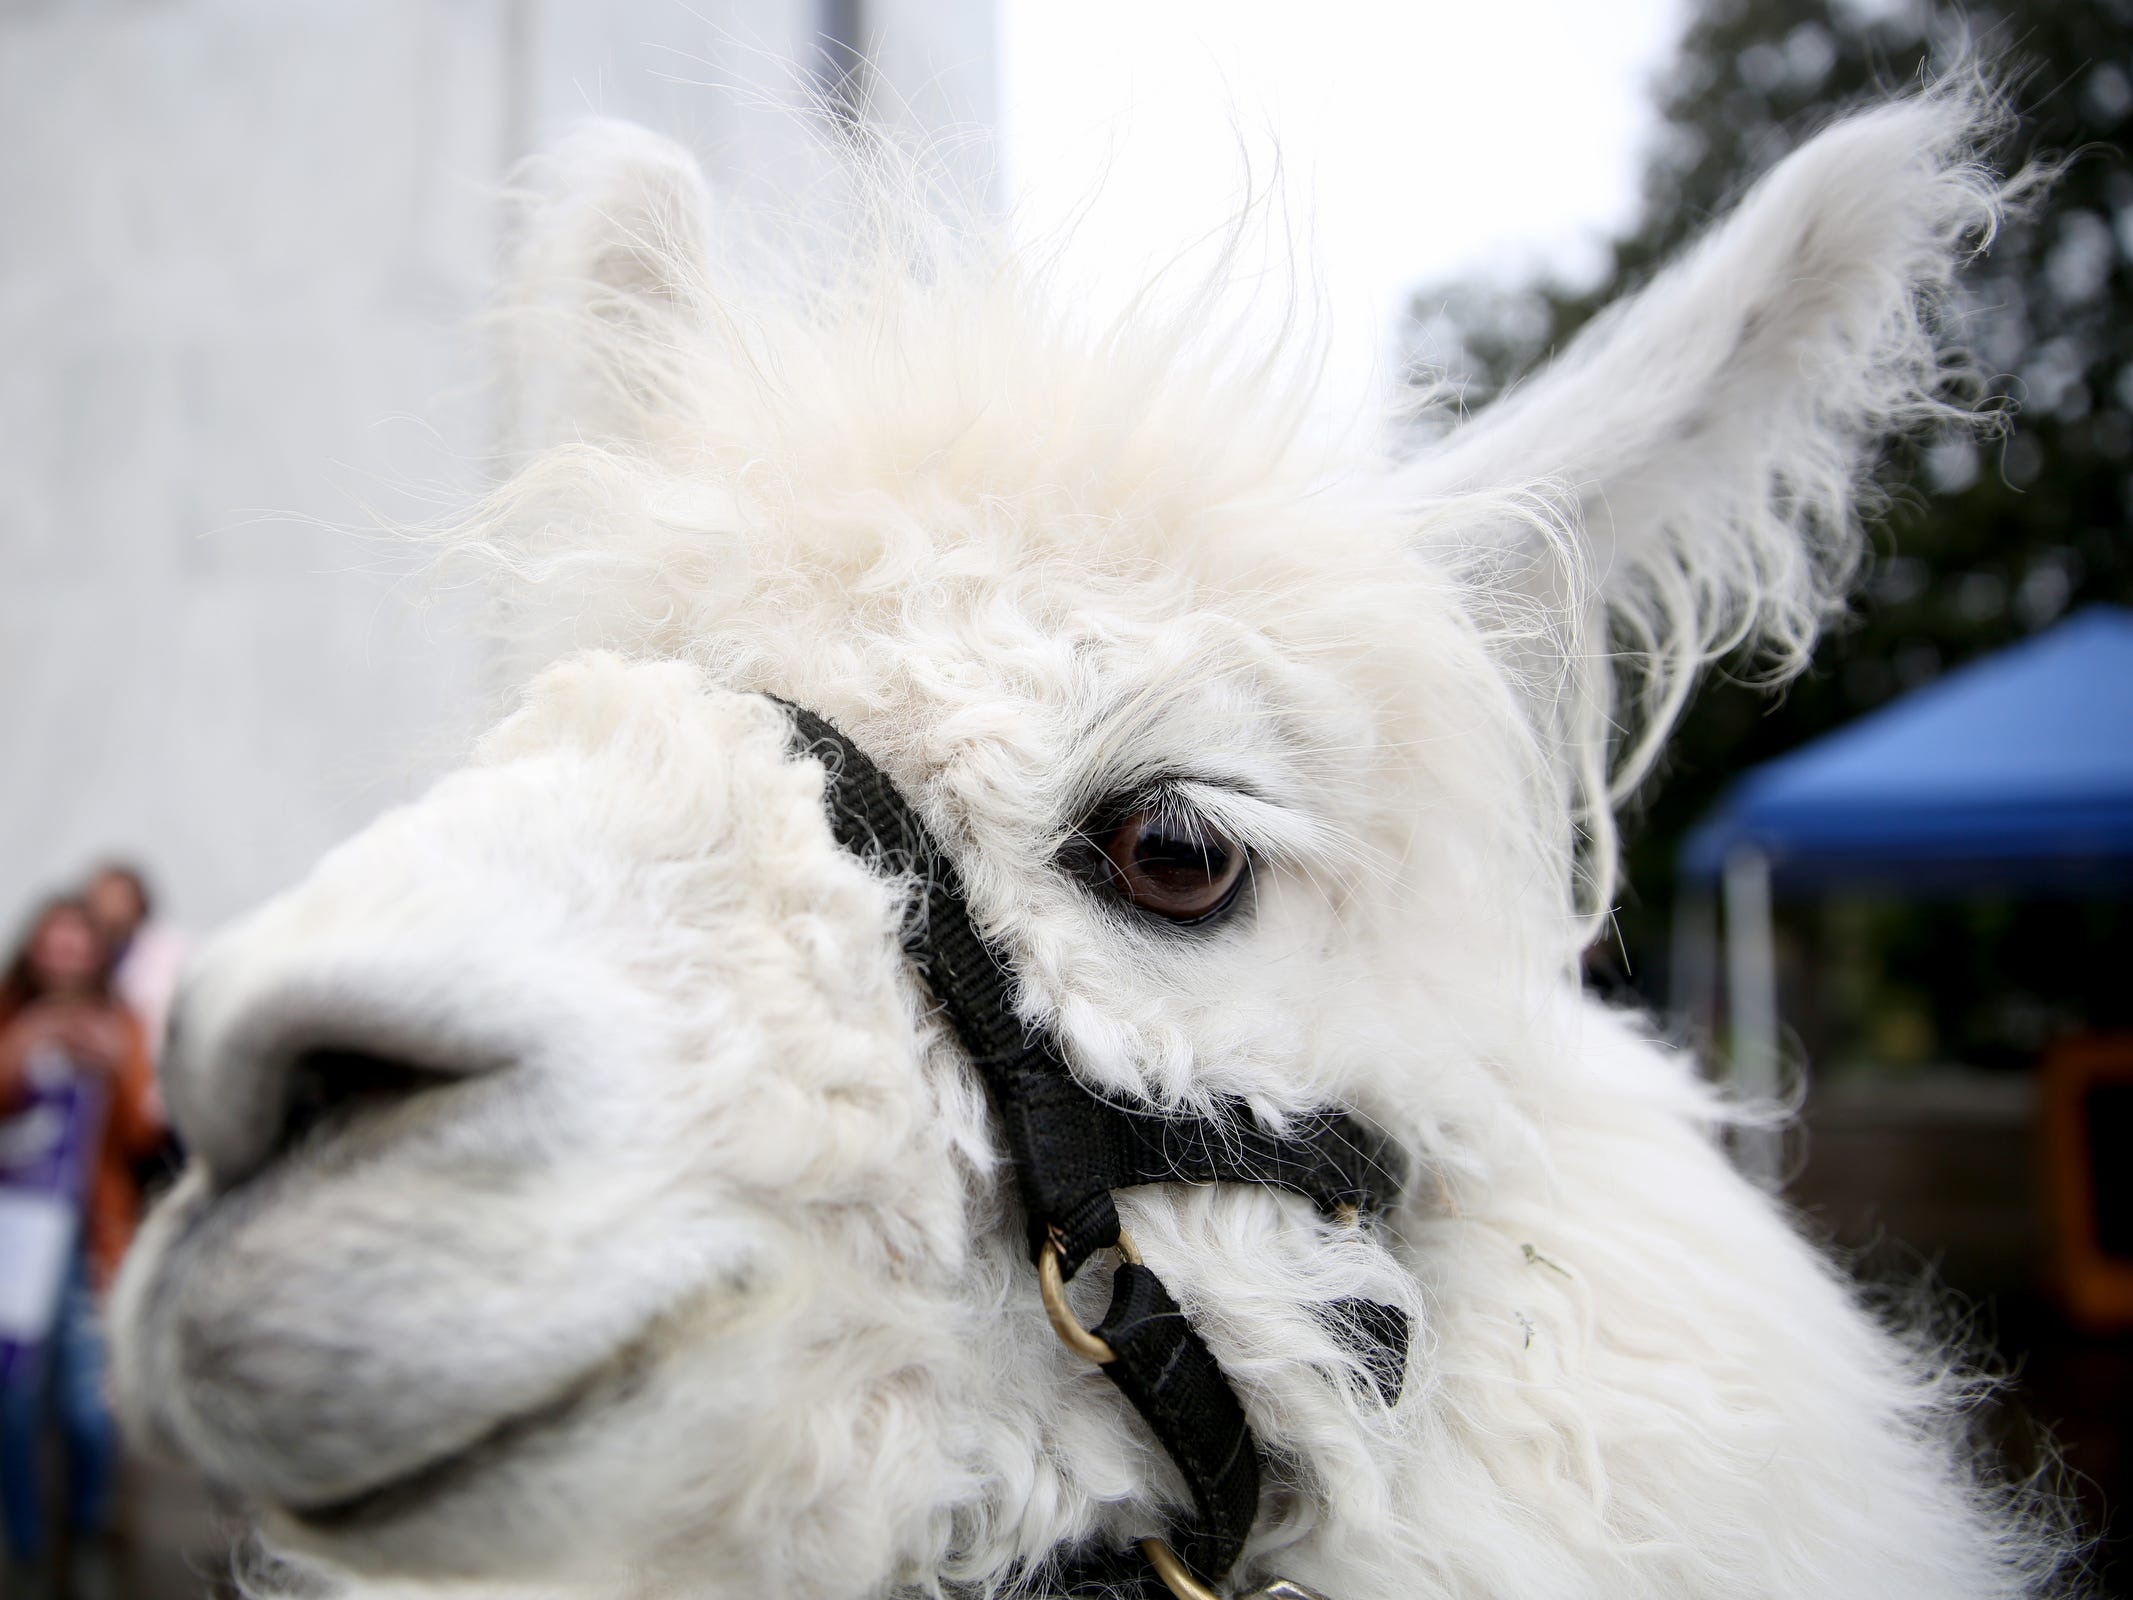 Caesar The No Drama Llama makes an appearance during a demonstration for International Women's Day at the Oregon State Capitol in Salem on Friday, March 8, 2019. Many during the rally voiced their support for a state-run family and medical leave insurance program in Oregon.